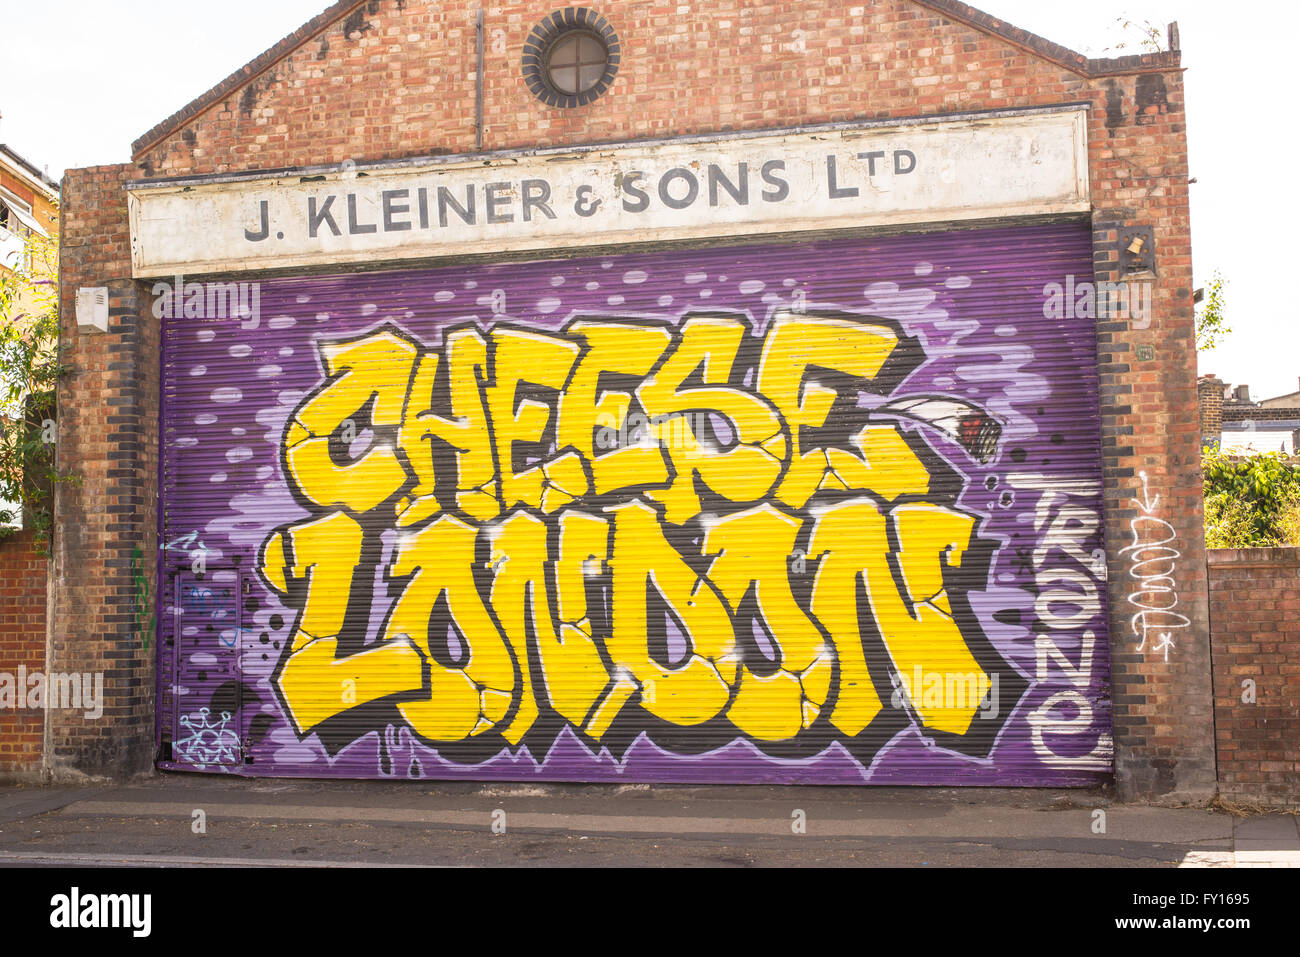 mural on garage stock photos mural on garage stock images alamy street art mural on the garage door of an old brick building with cheese london